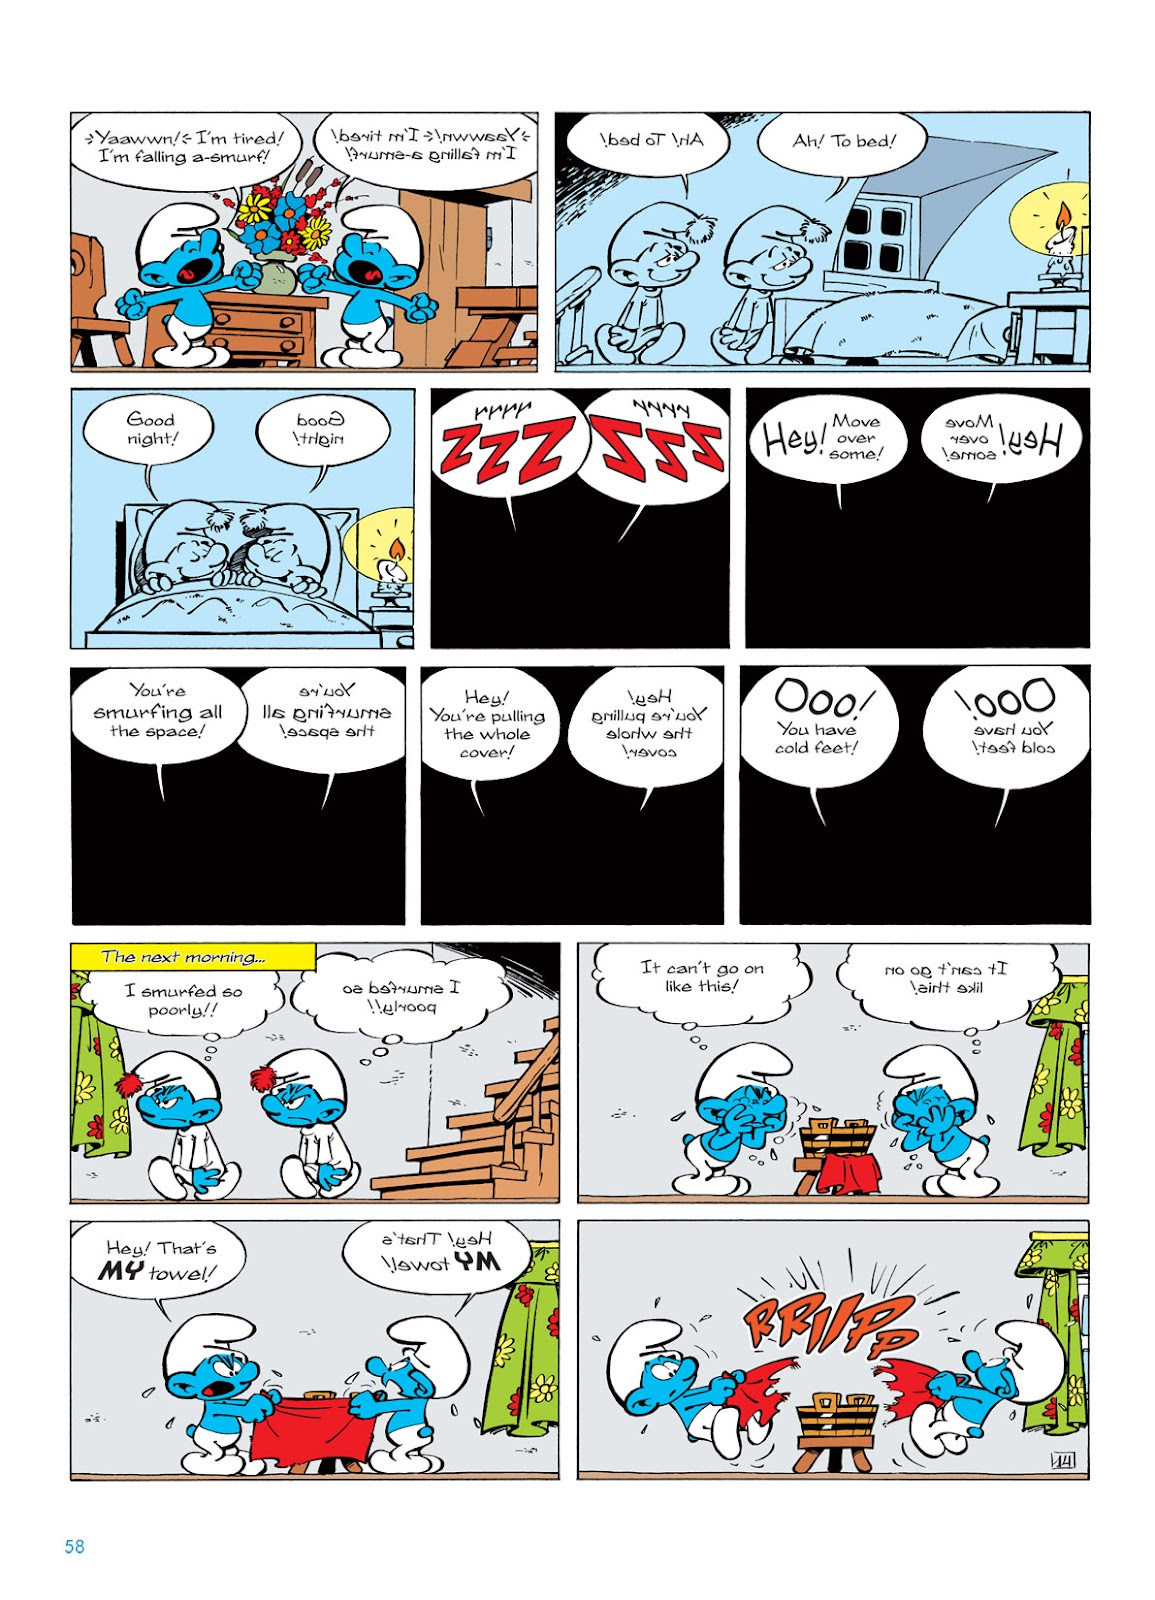 Read online The Smurfs comic -  Issue #5 - 58